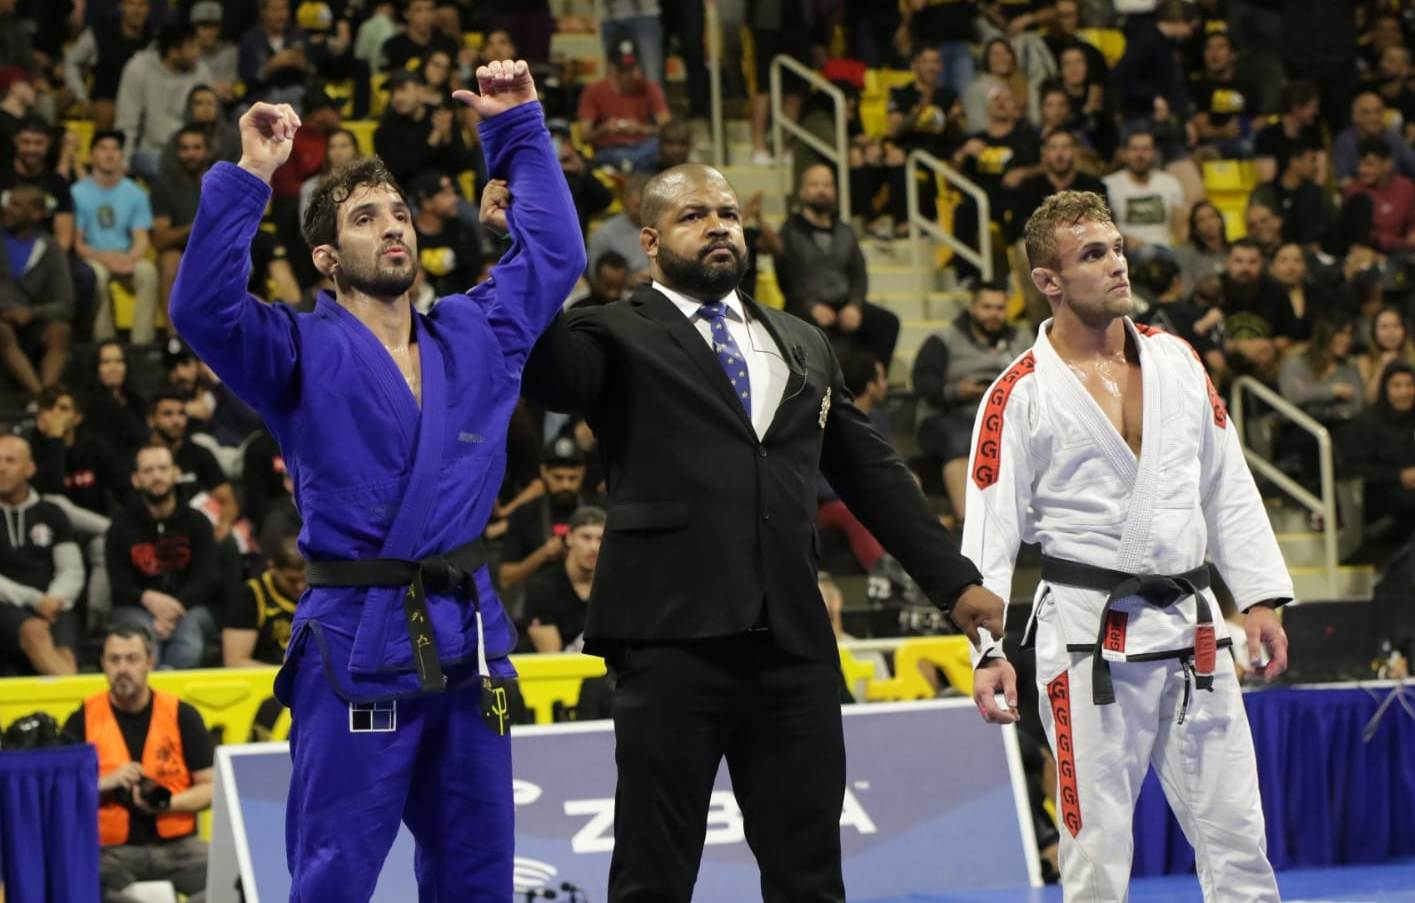 BJJ Techniques: How to successfully escape the Armbar